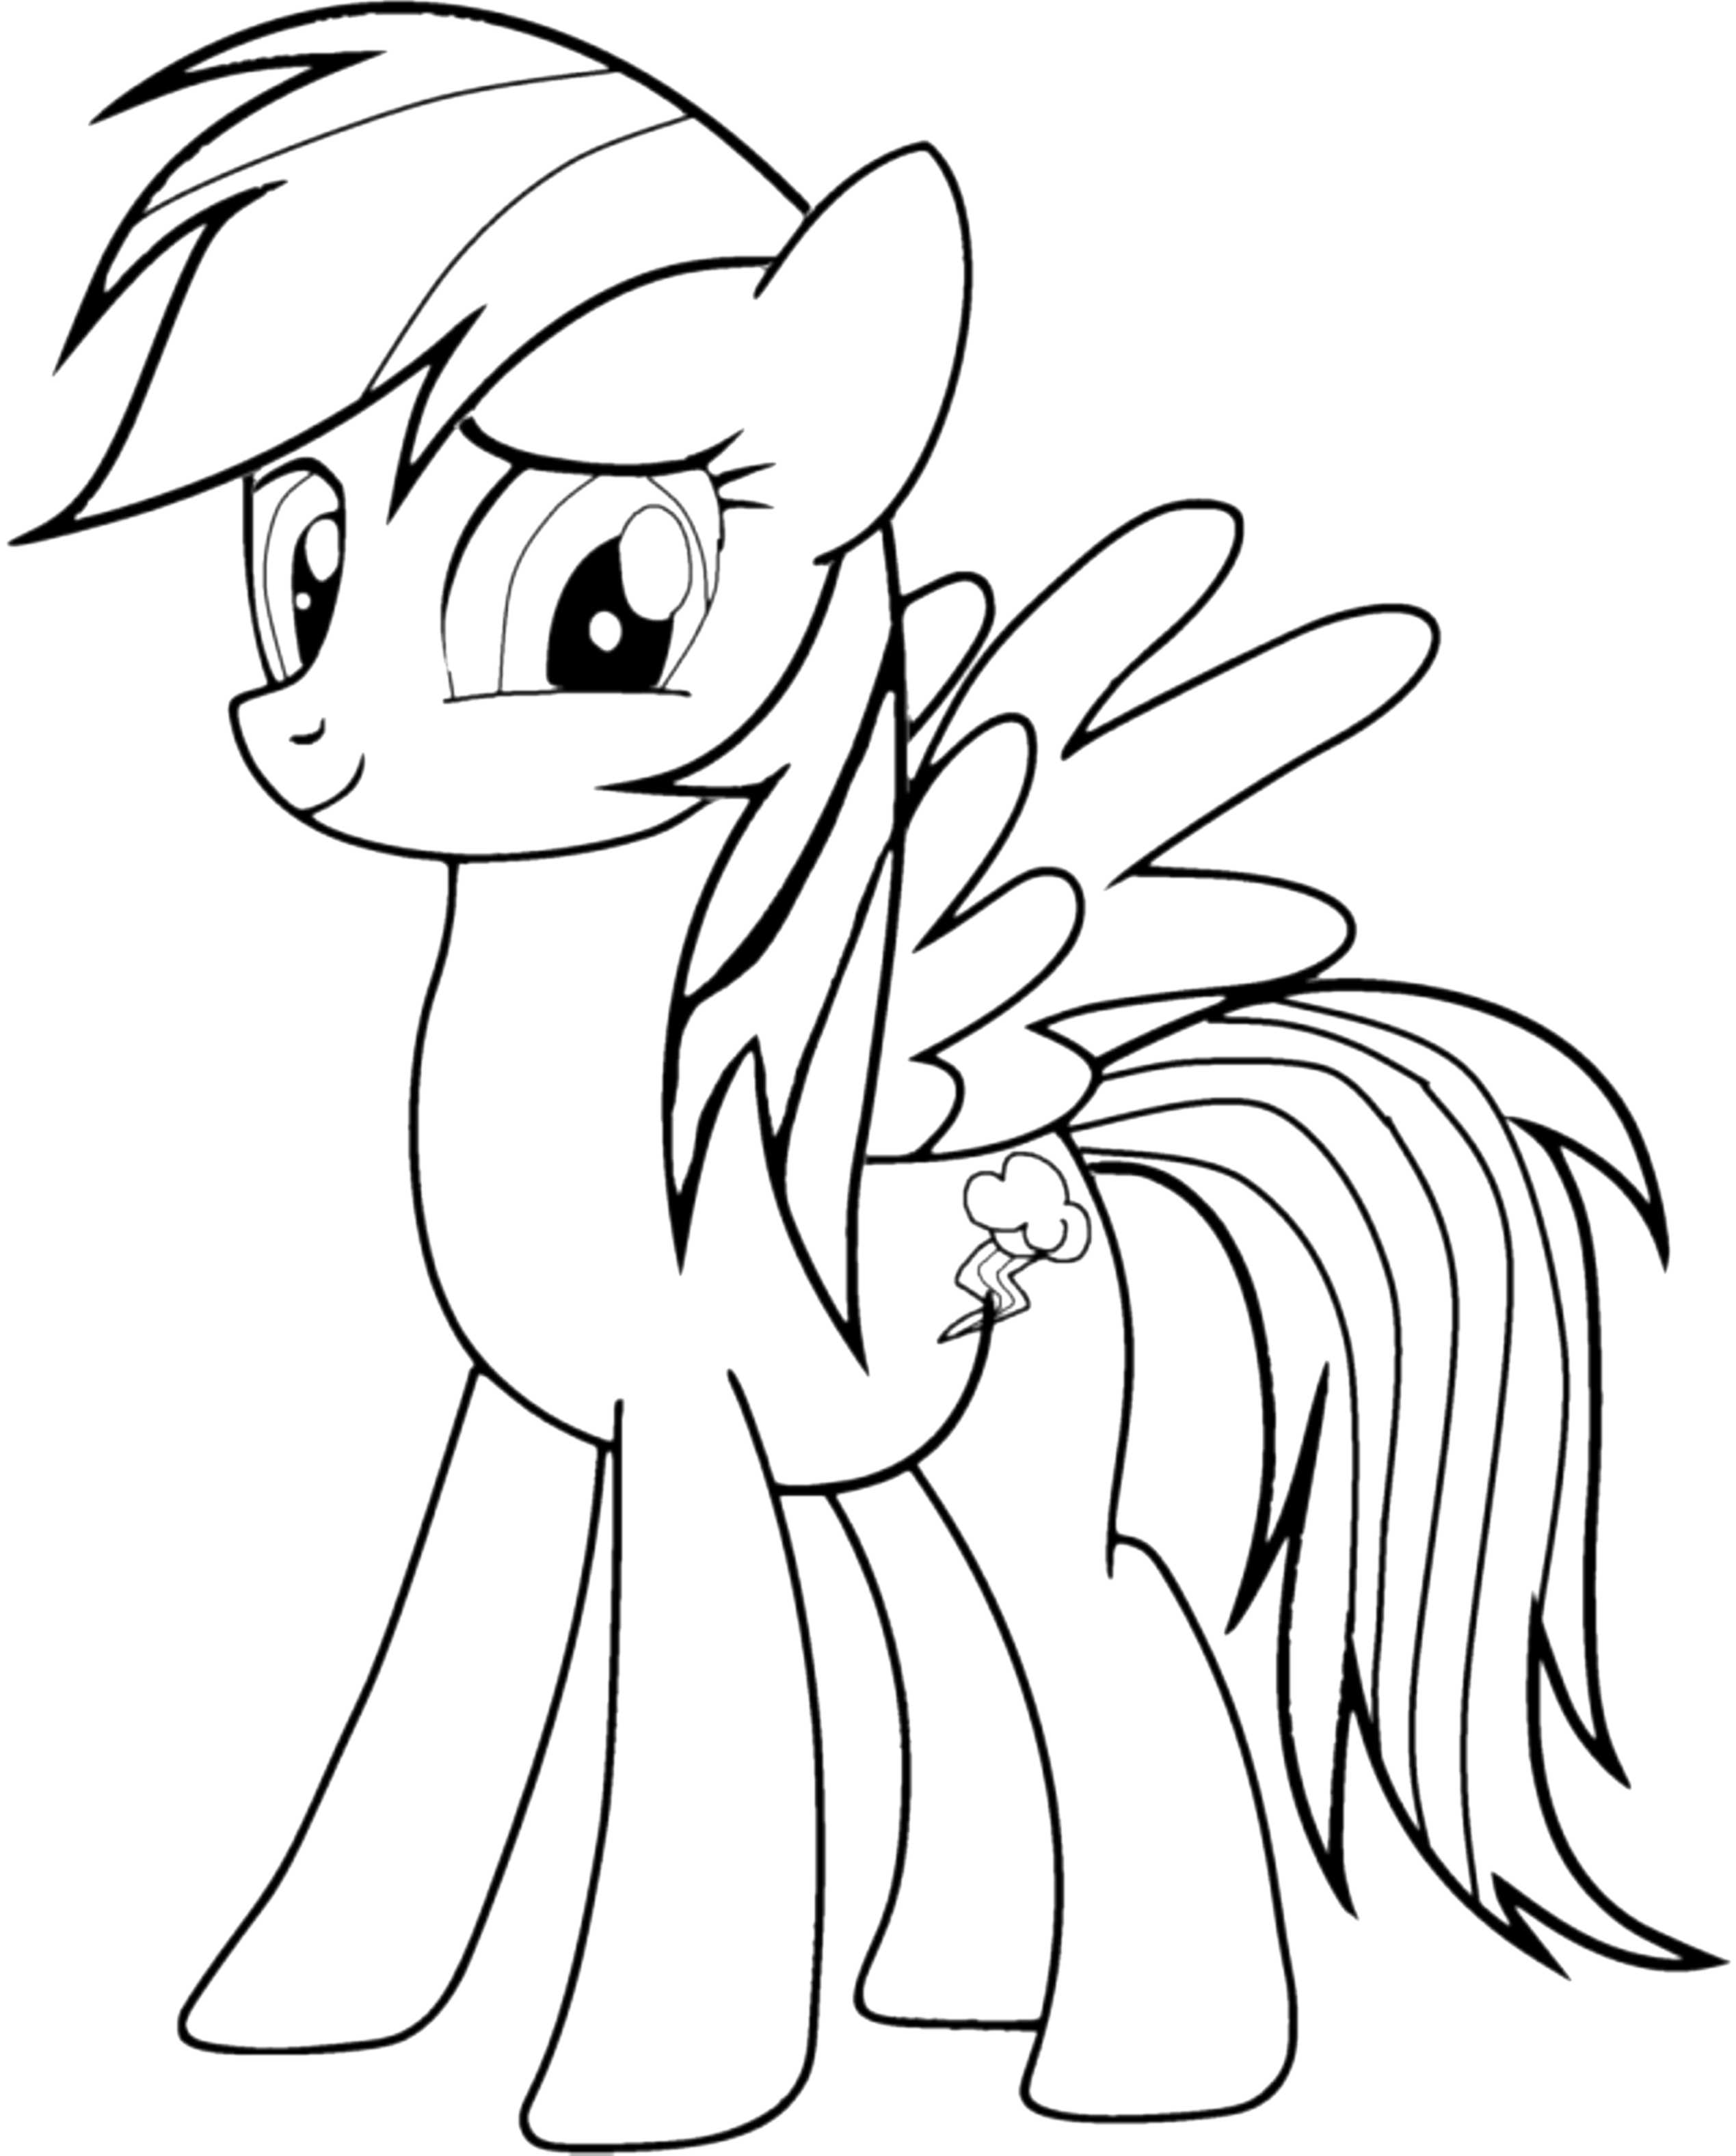 Rainbow Coloring Pages Pdf : My little pony rainbow dash coloring page